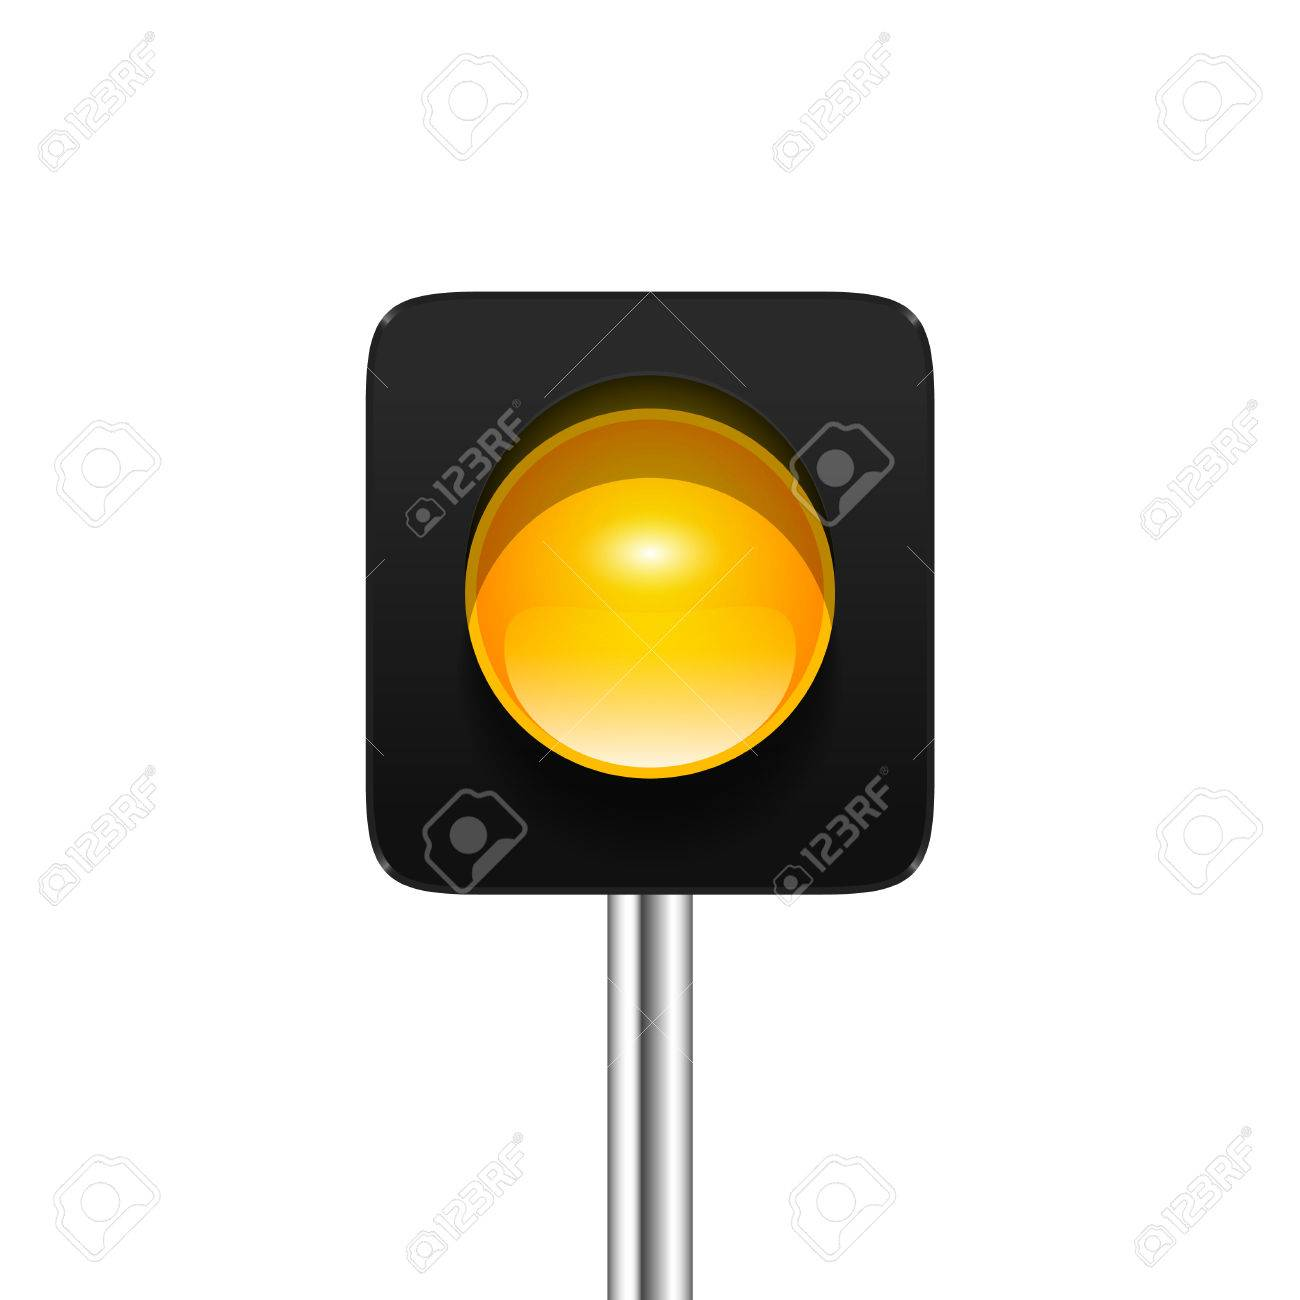 Stylish Modern Vector Yellow Single Aspect Traffic Signal Isolated ... for Traffic Light Yellow Icon  150ifm